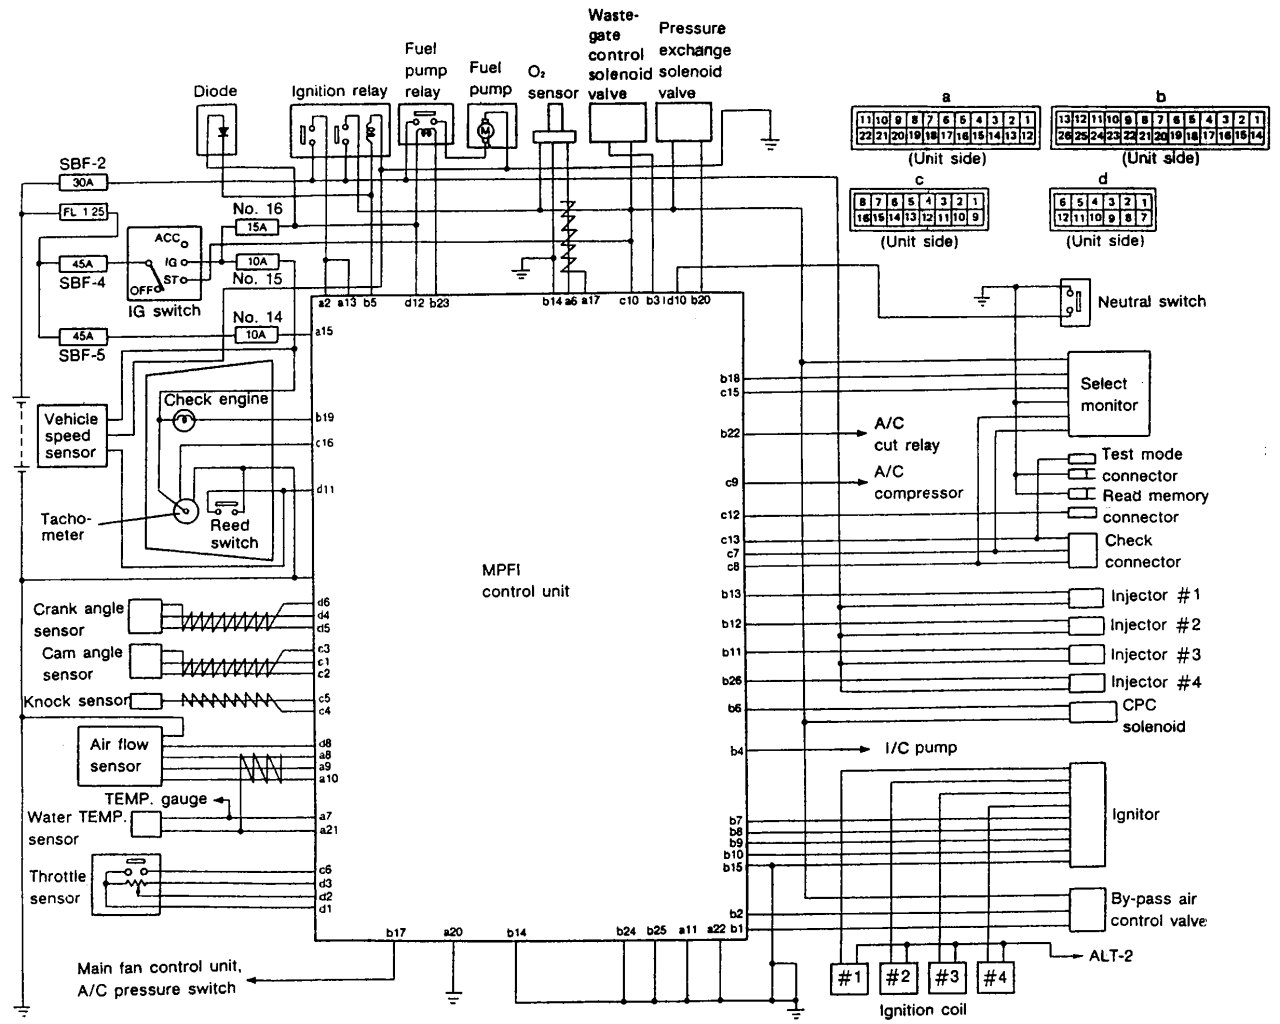 DIAGRAM] 1996 Subaru Svx Radio Wiring Diagram FULL Version HD Quality Wiring  Diagram - UBER2CORONADO.DATAJOB2013.FRuber2coronado.datajob2013.fr